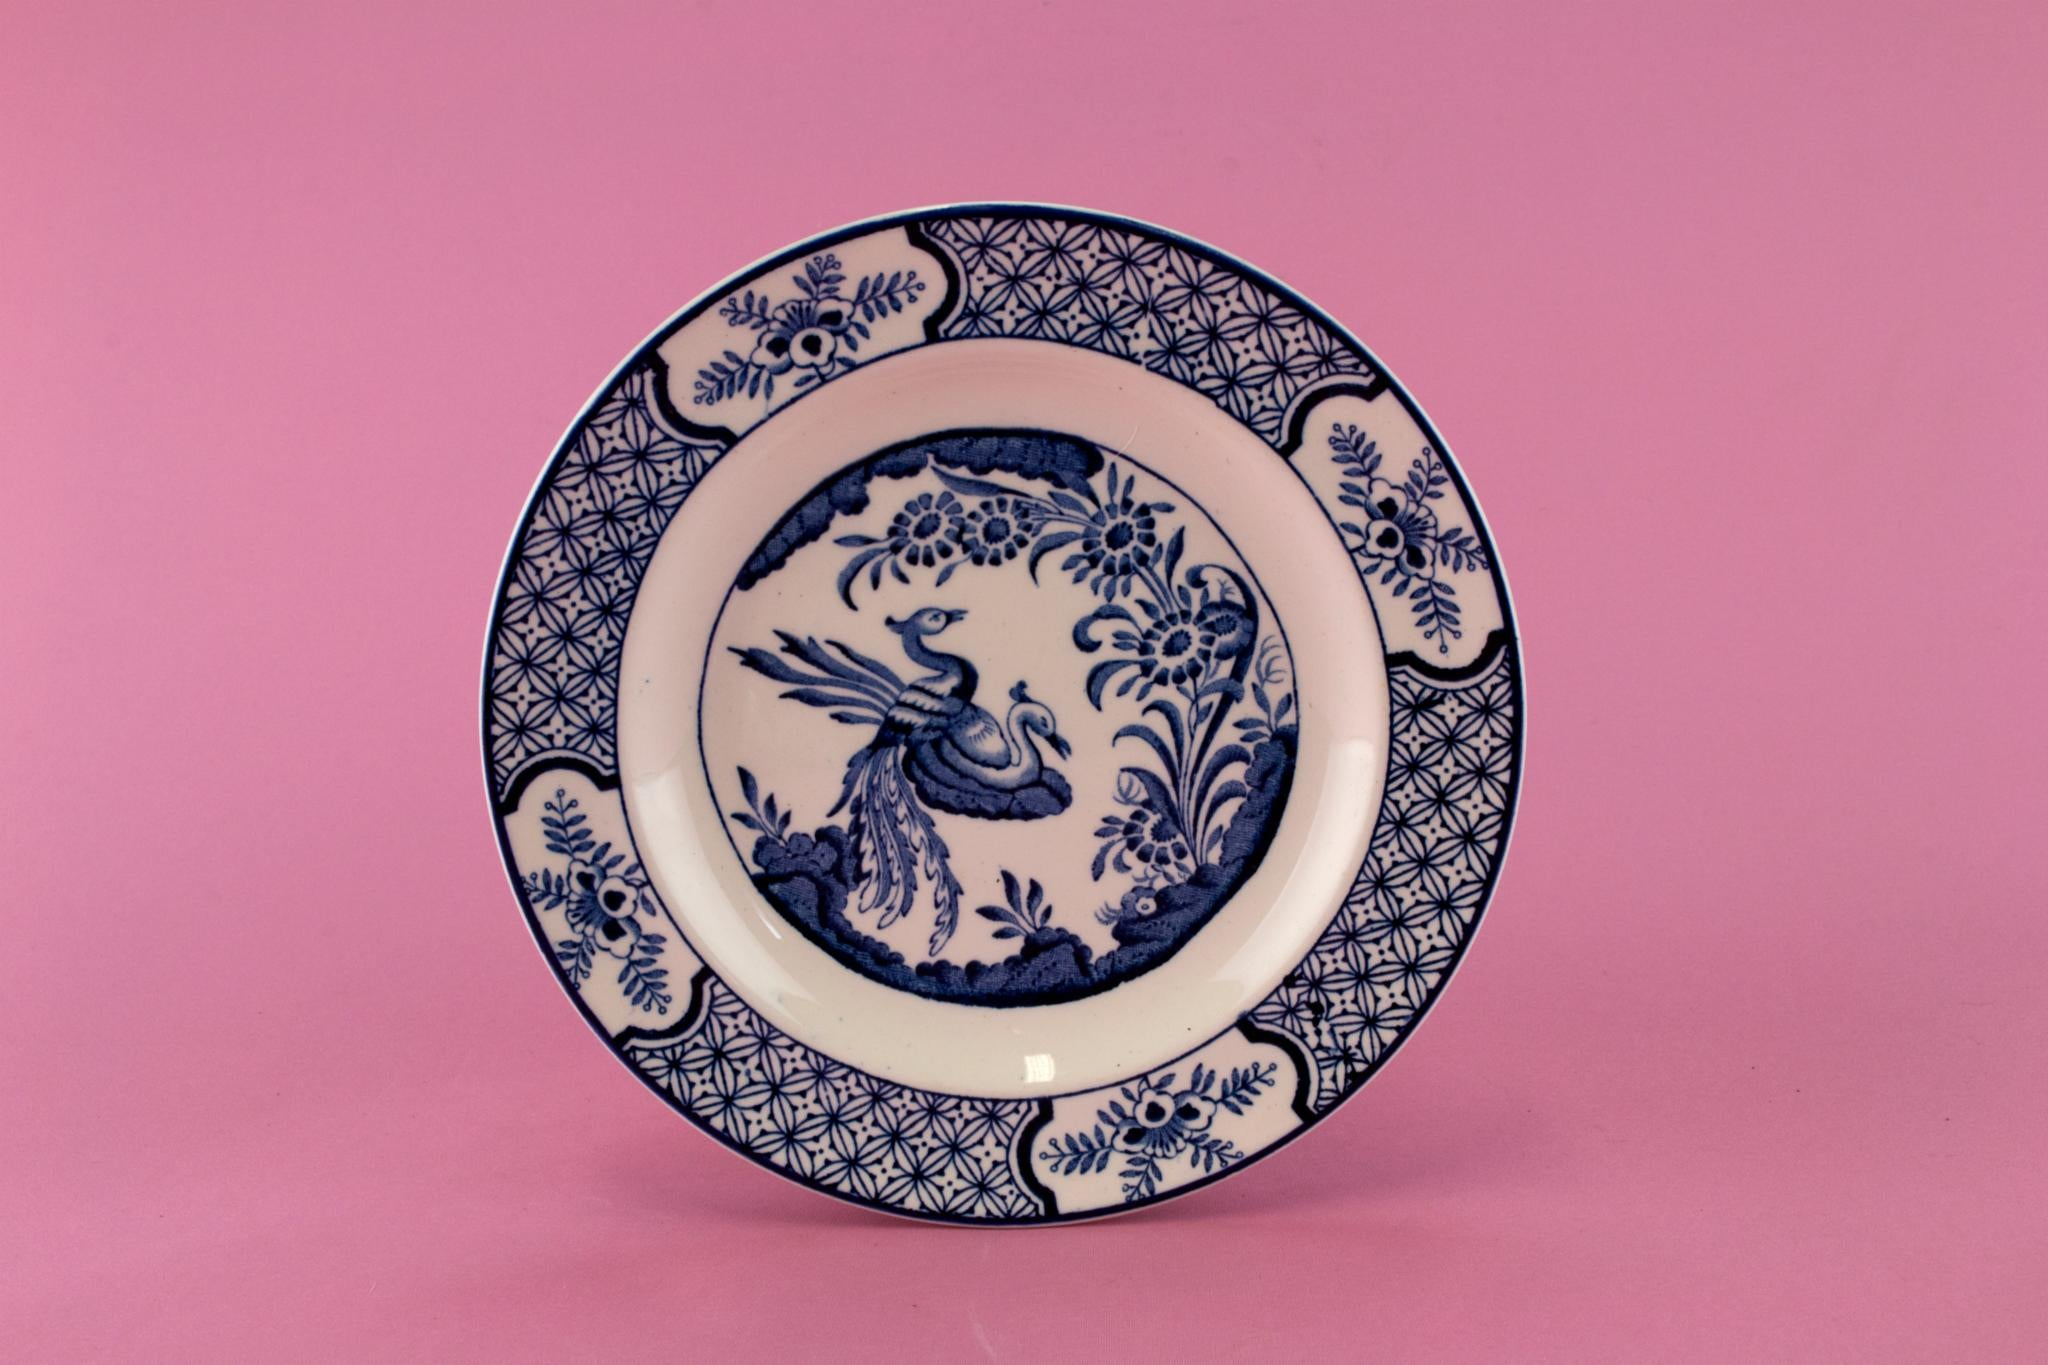 6 Small Blue and White Yuan Plates, English 1910s